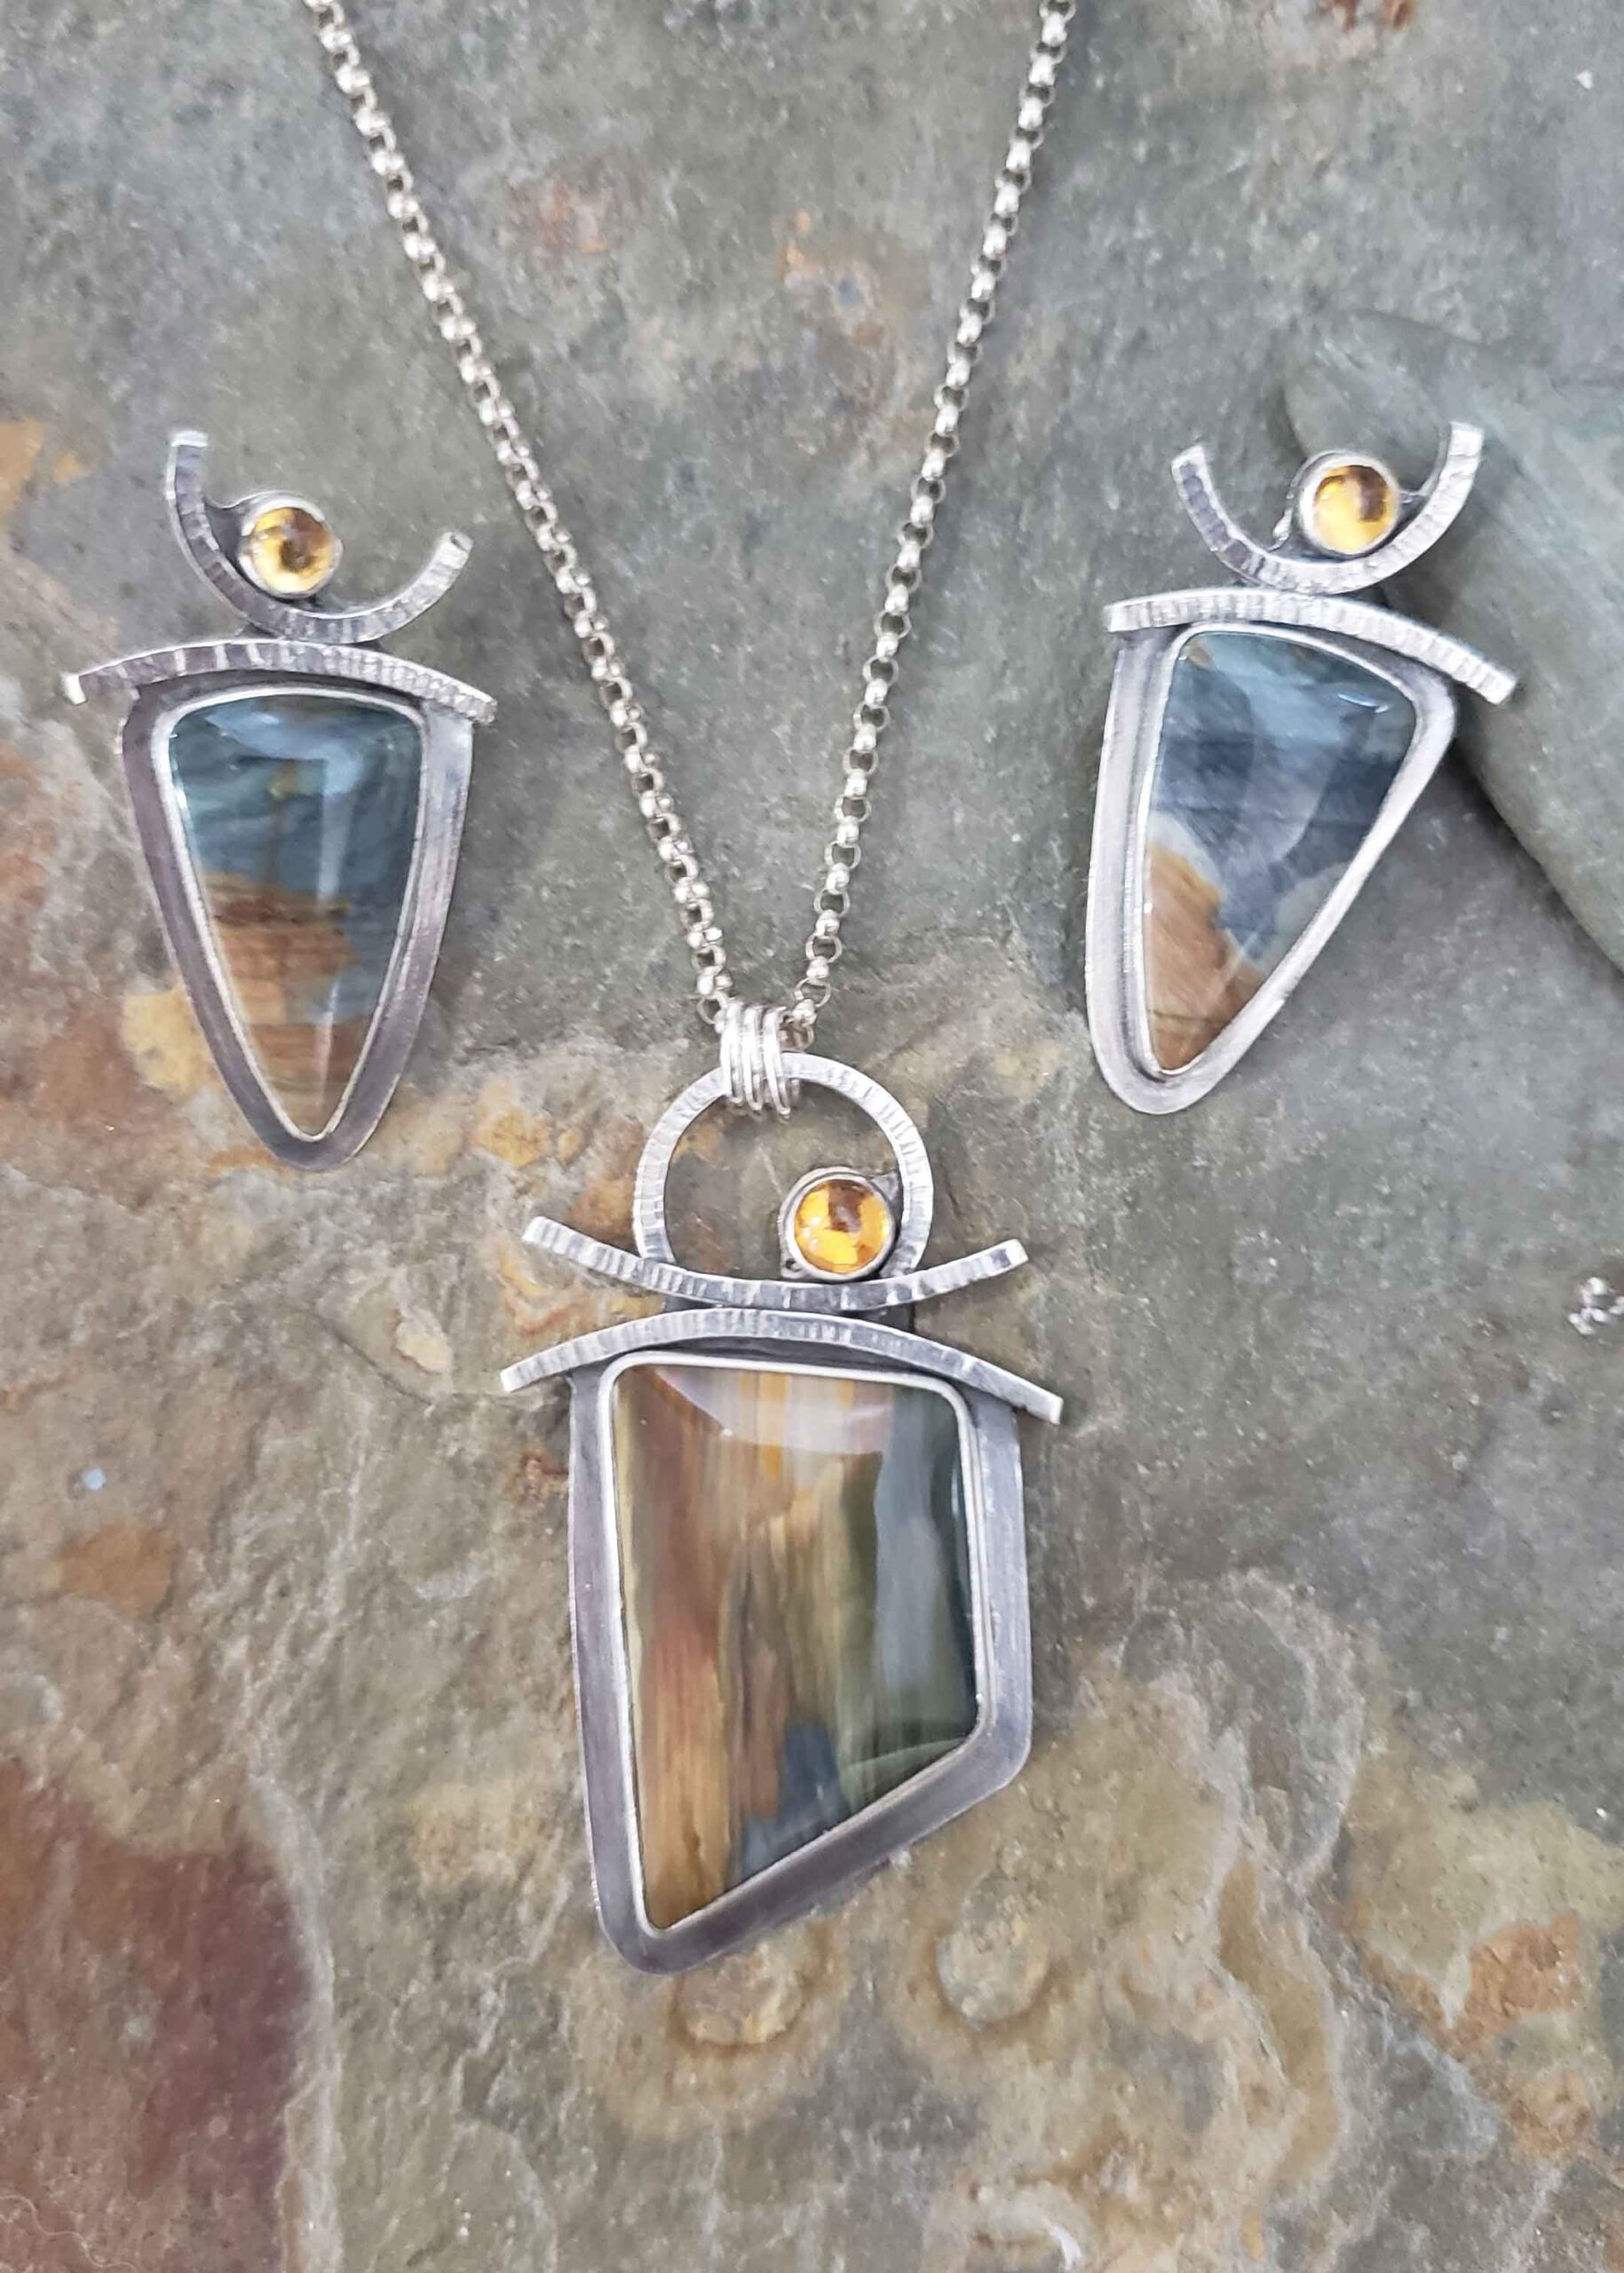 Blues, greens and golden hues in silver earrings and pendant by Dona Miller.